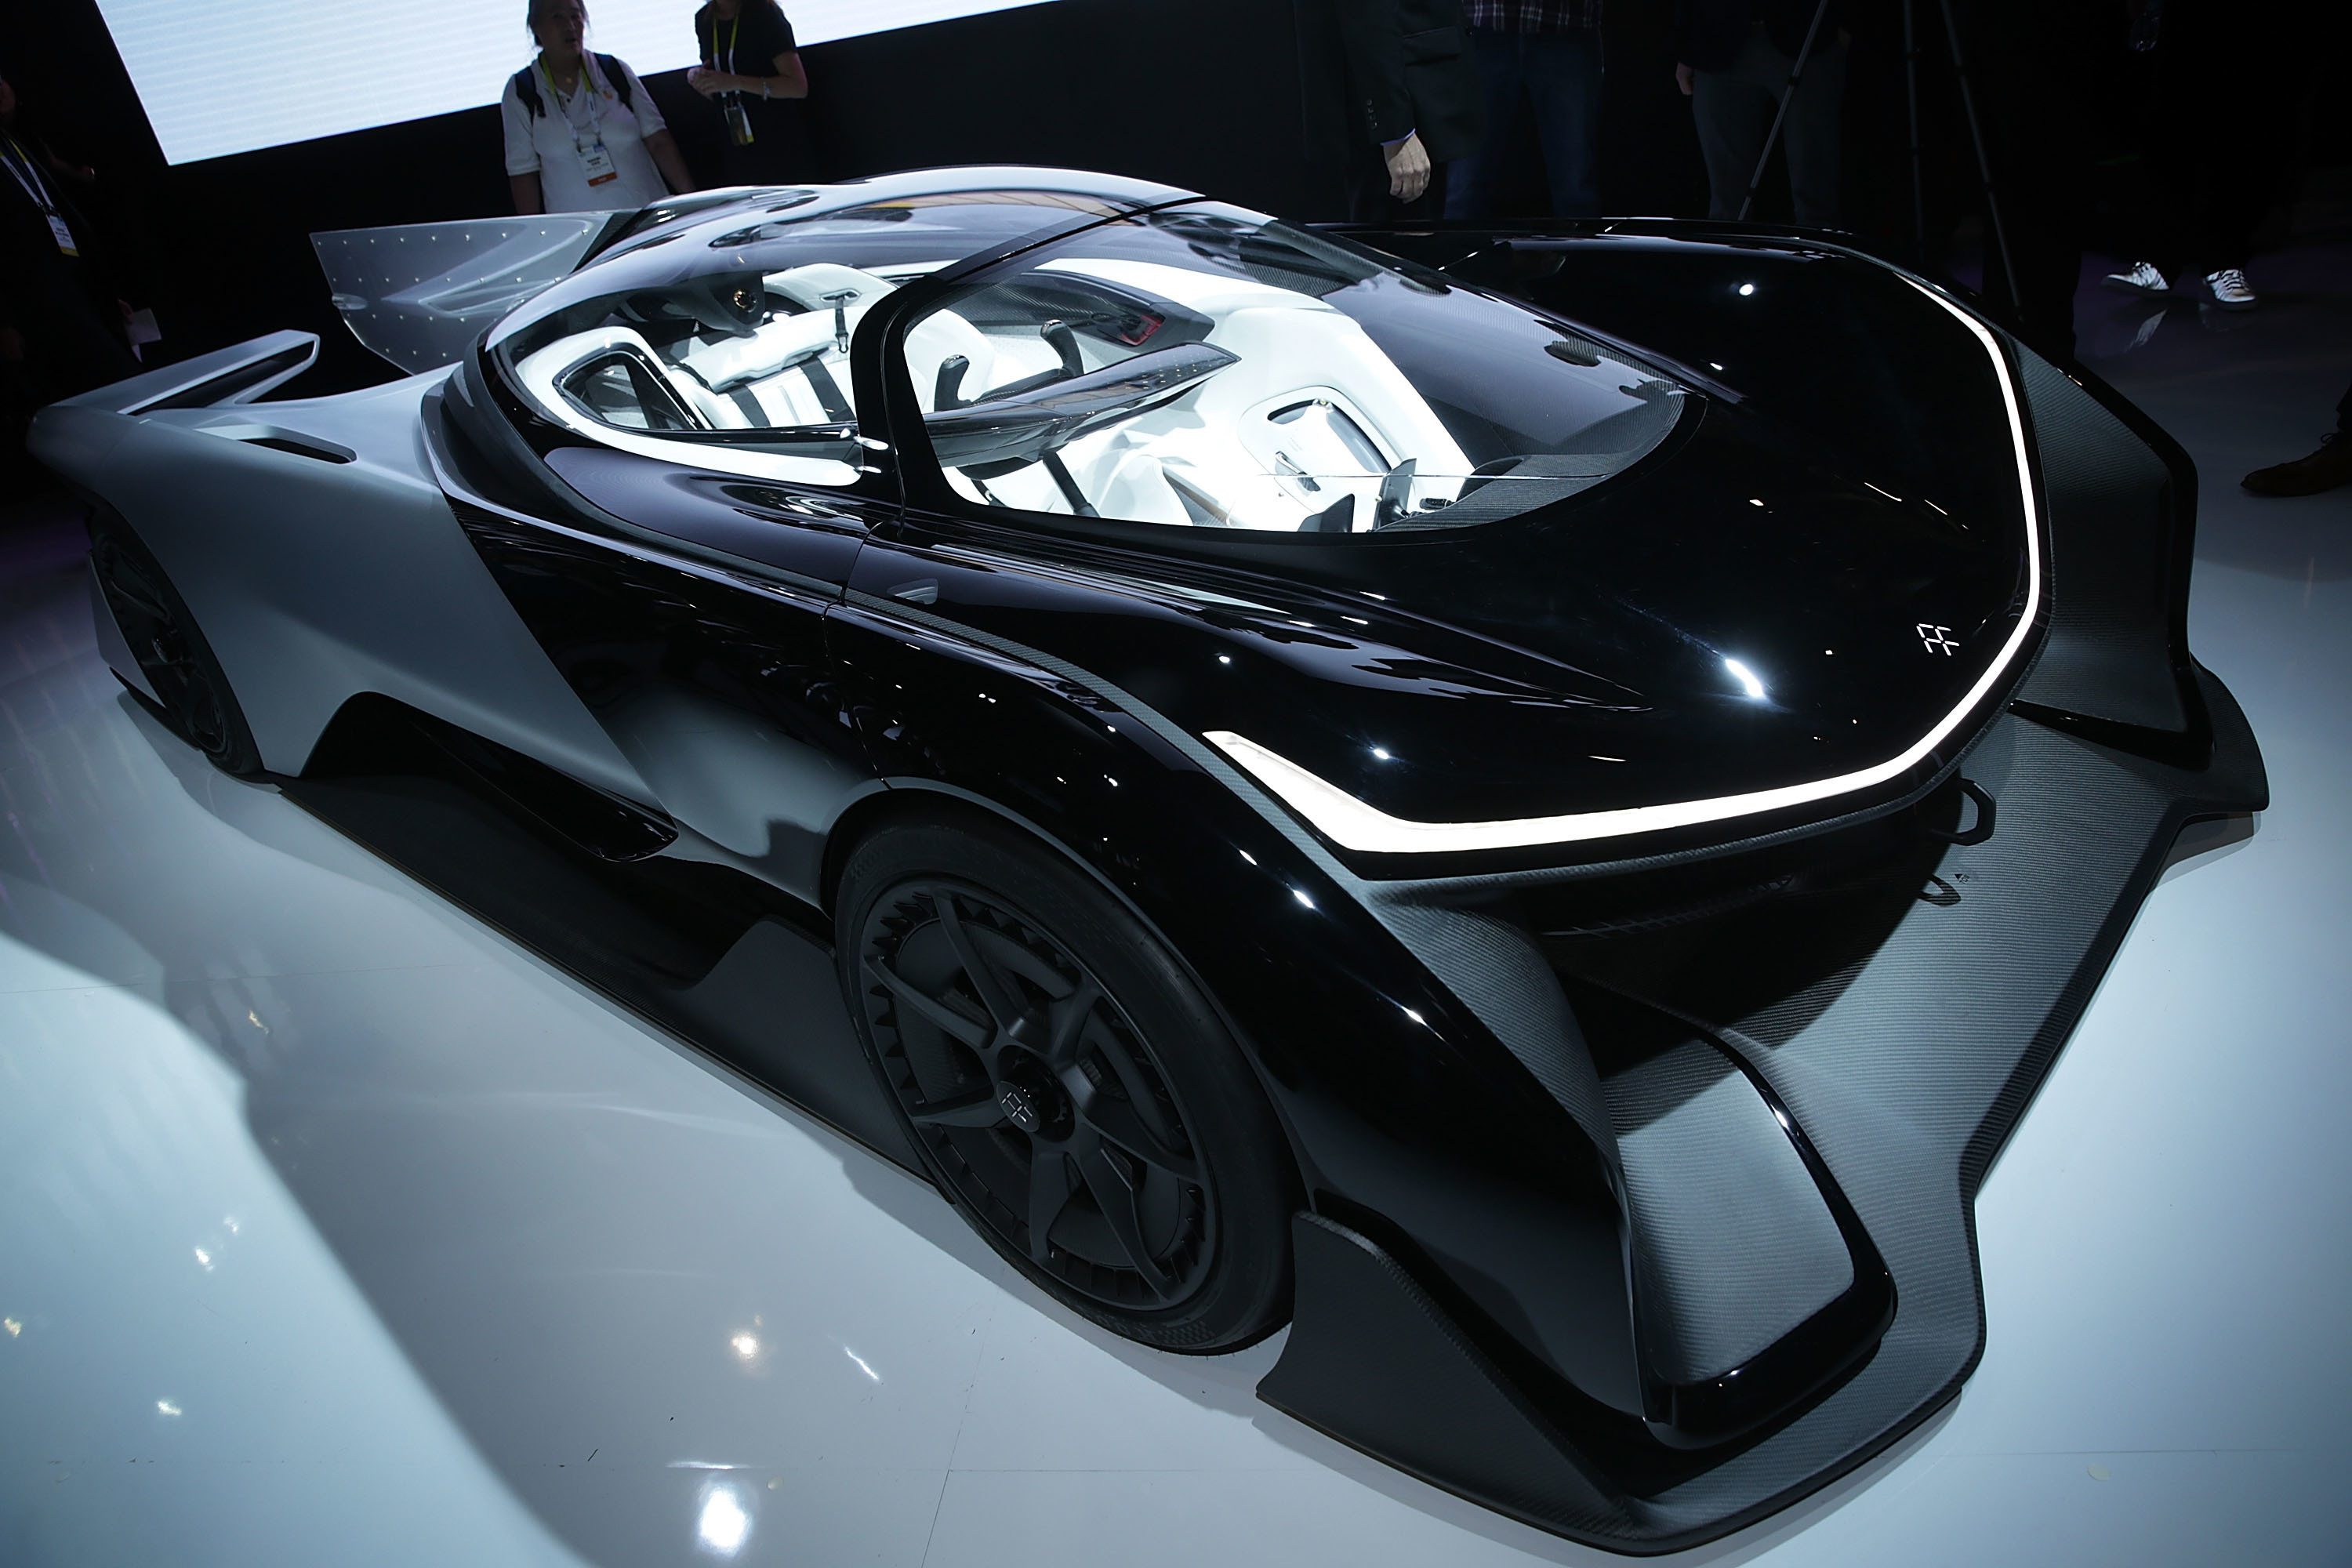 Faraday Future Revealed Its Electric Car and Thankfully It Looks